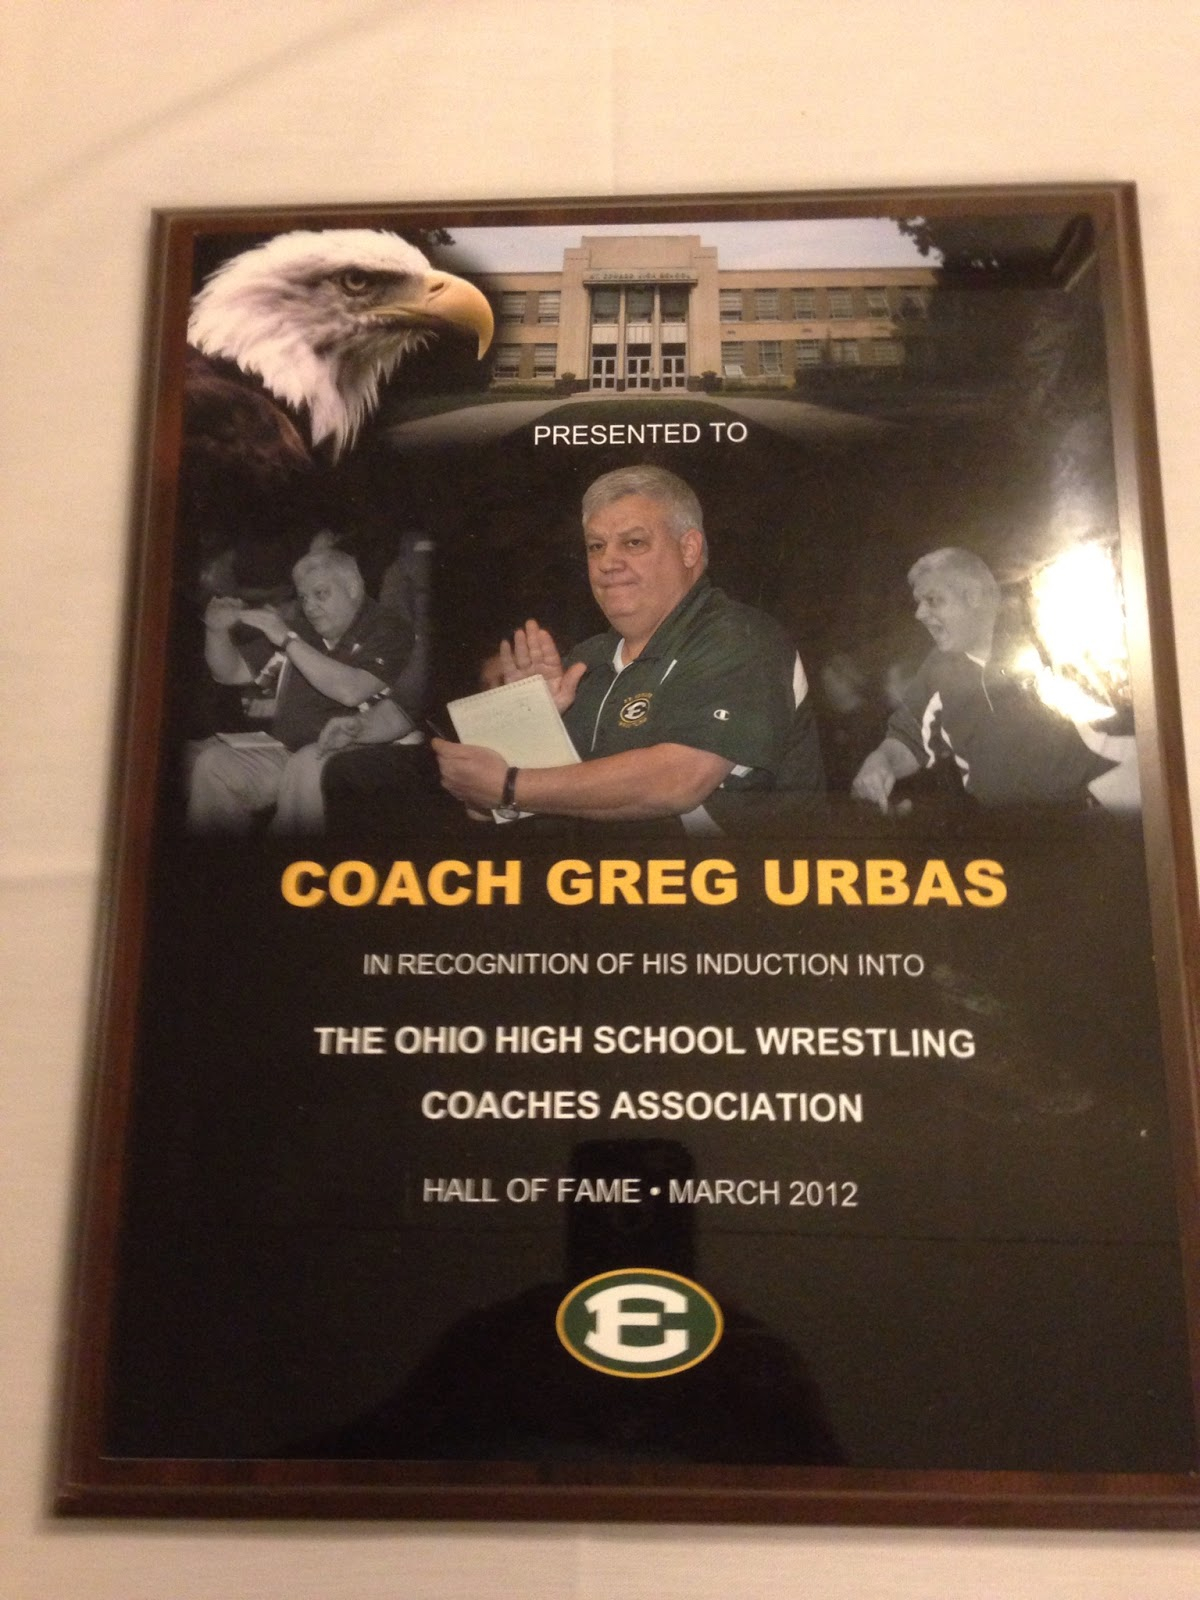 Humble Greg Urbas Gets Great Send Off In A Full Room At Brennan's Party  Center, Enters Retirement As Coach Emeritus And Math Tutor At St. Edward